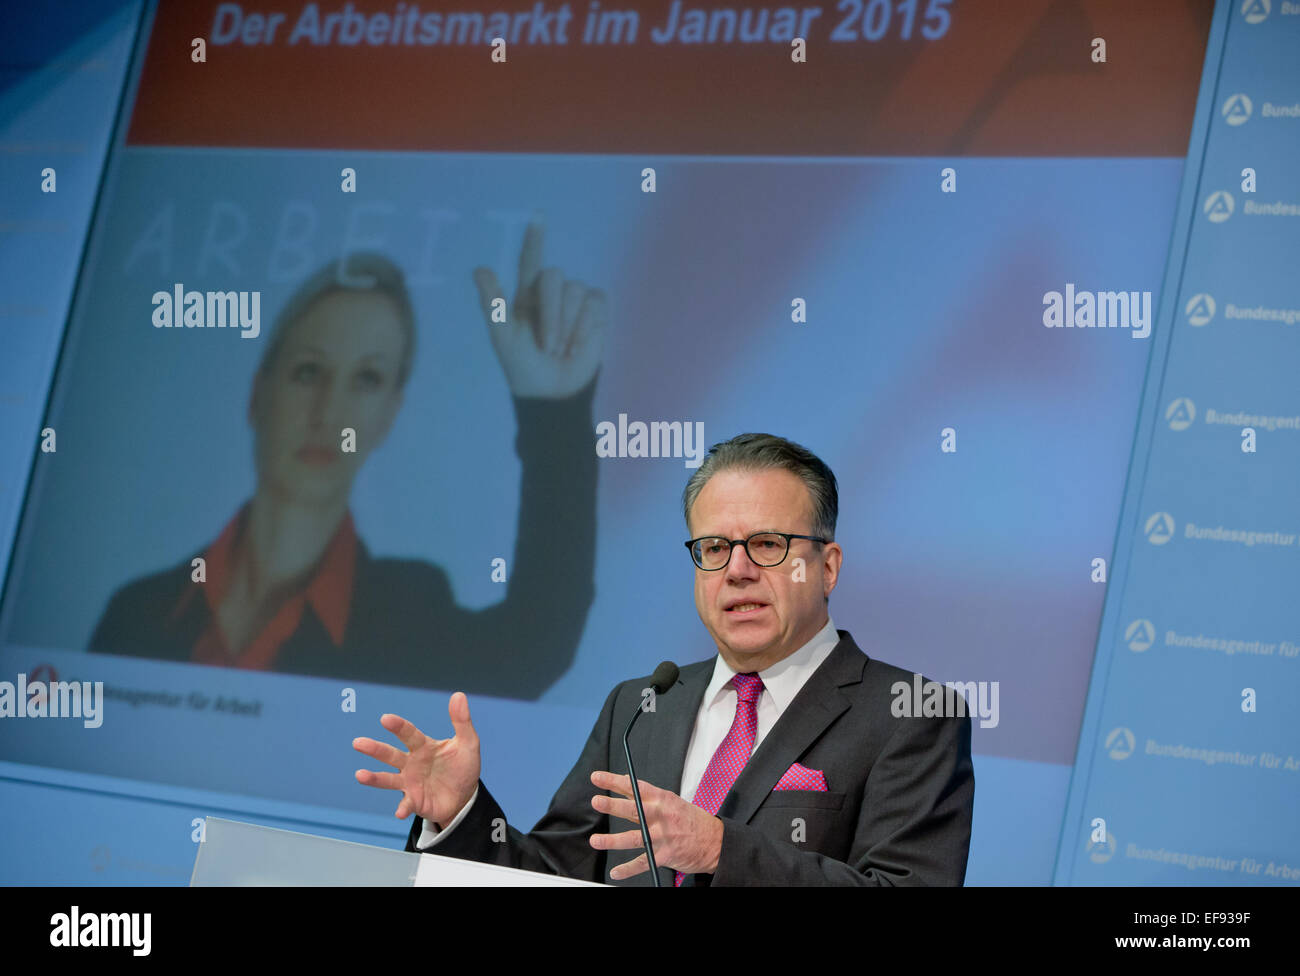 Chairman of the German Federal Employment Agency Frank-Juergen Weise speaking at a press conference regarding developments - Stock Image